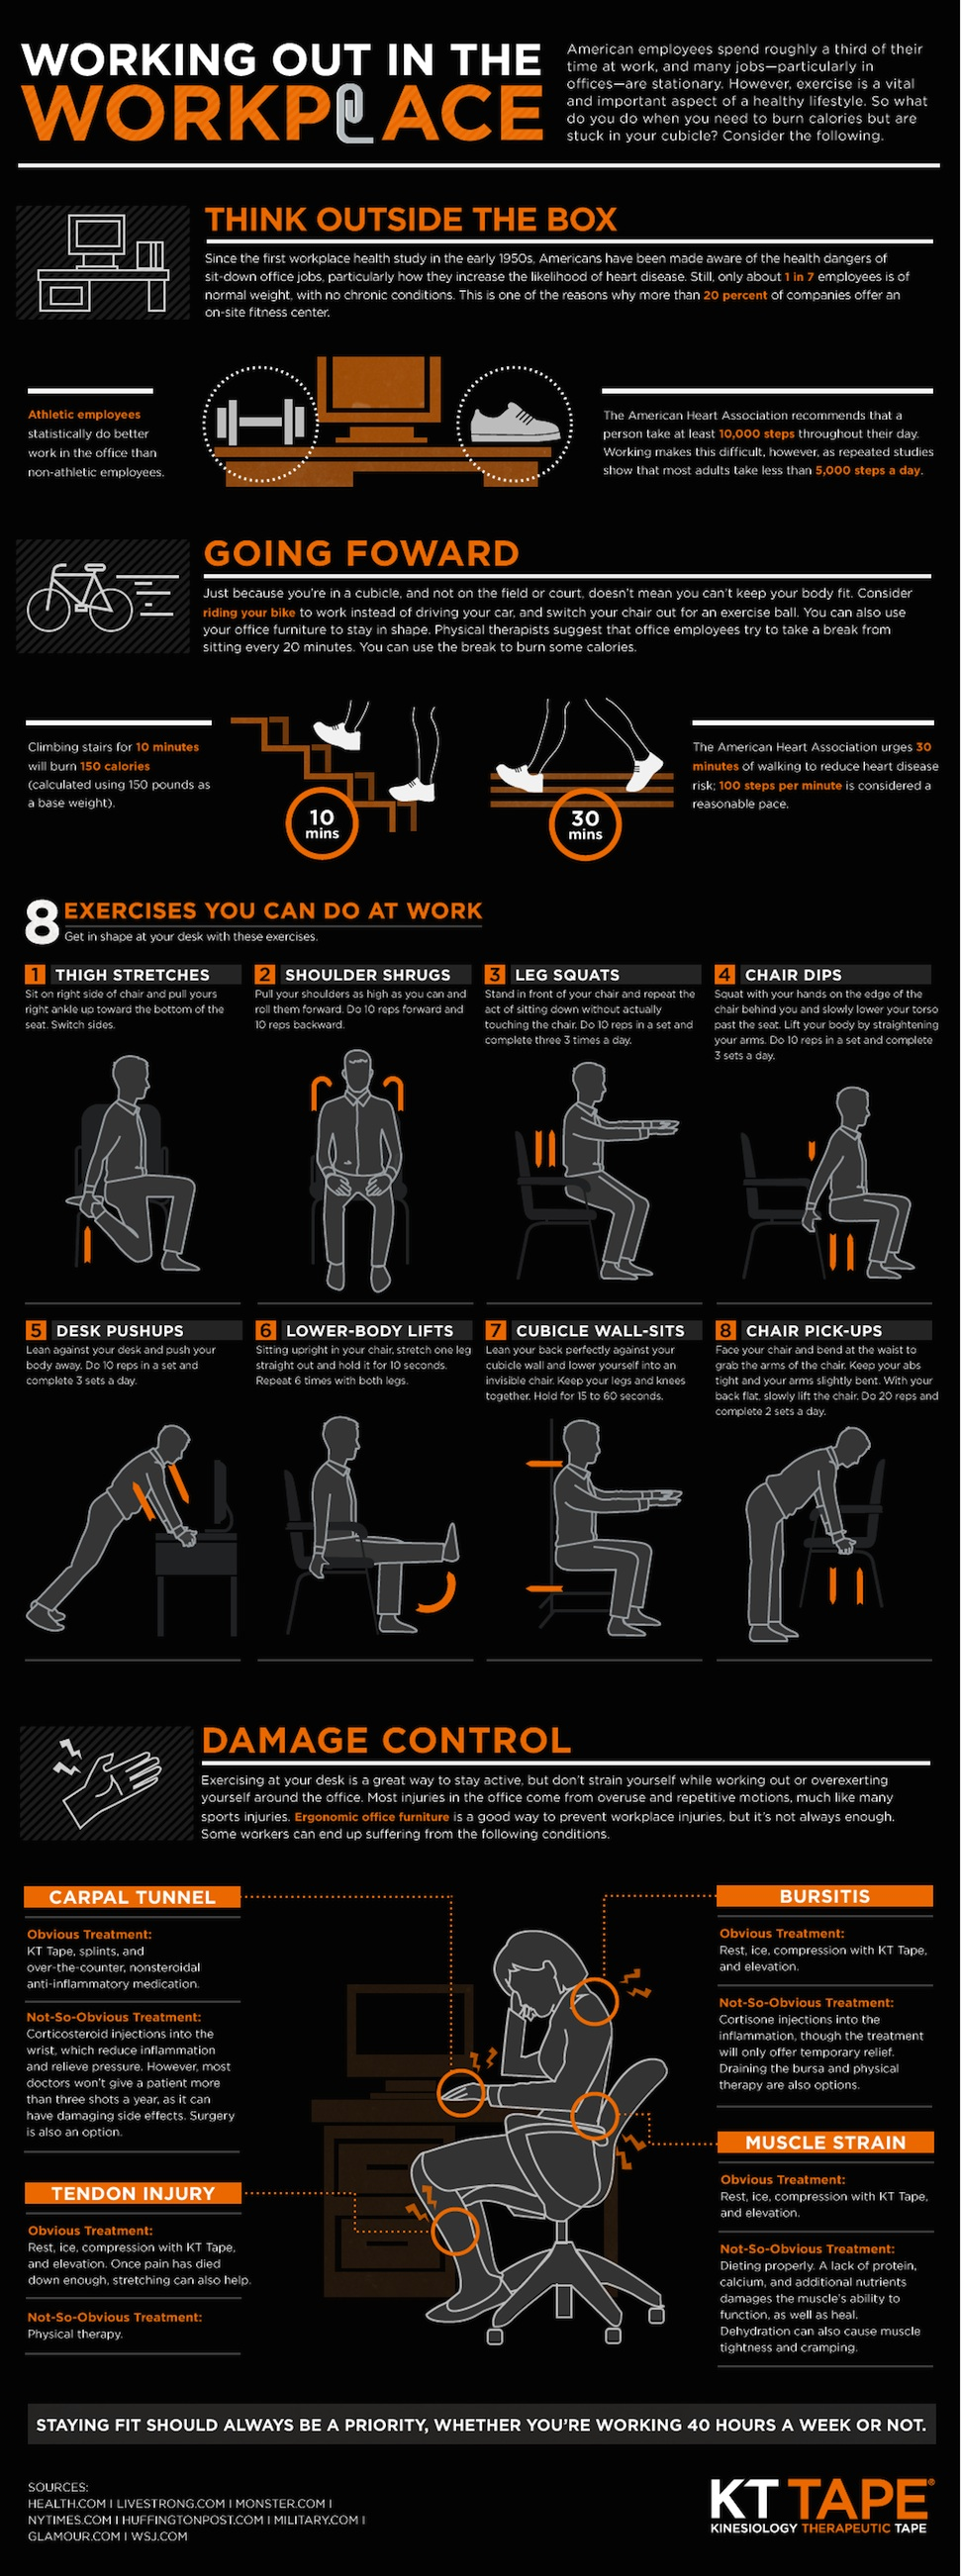 Working-Out-In-The-Workplace-Infographic